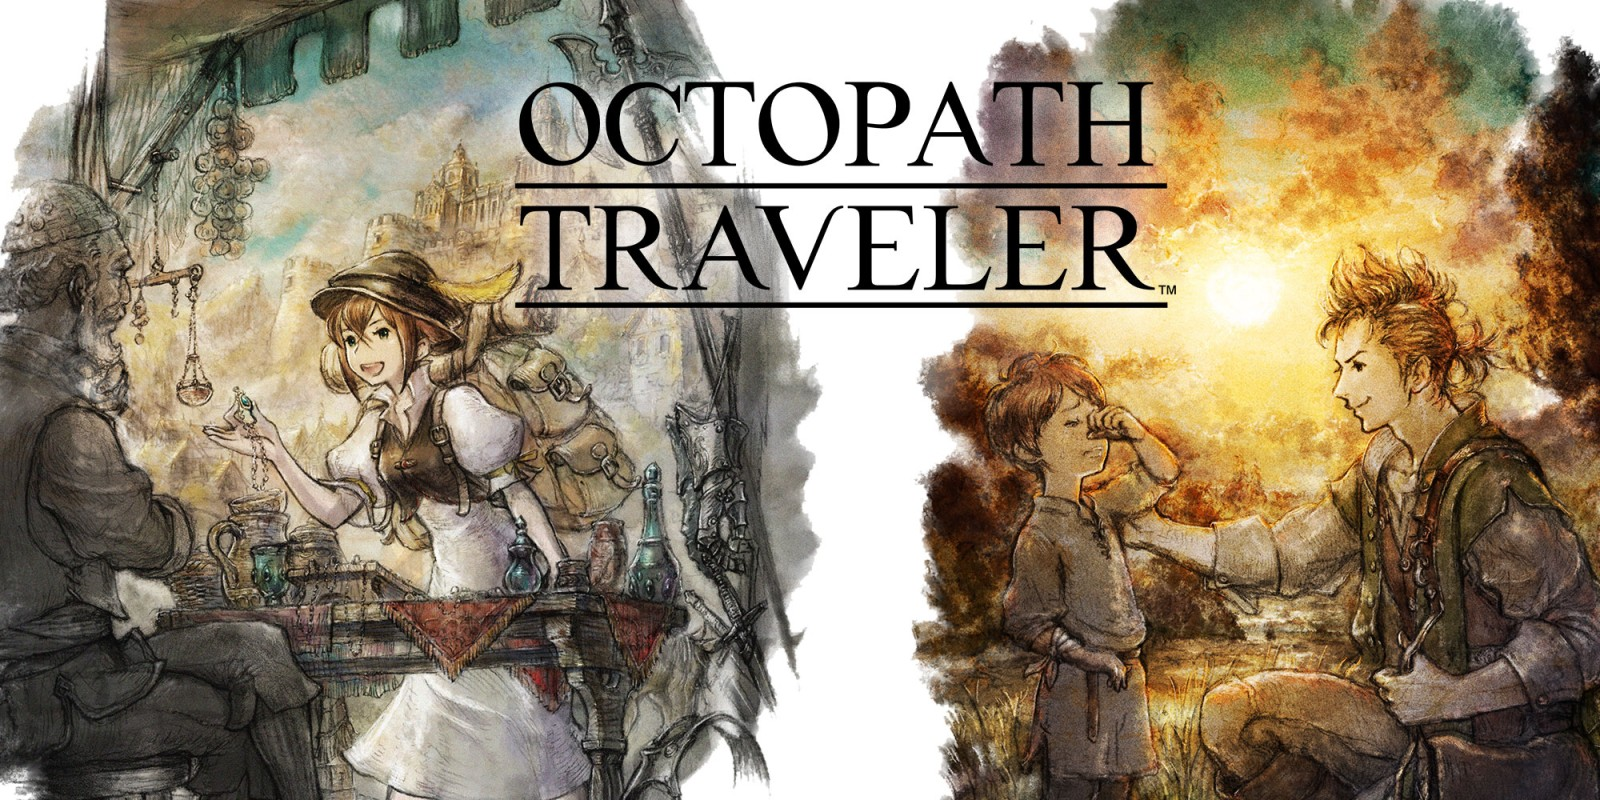 Square Enix definitely wants to make more games like Octopath Traveler